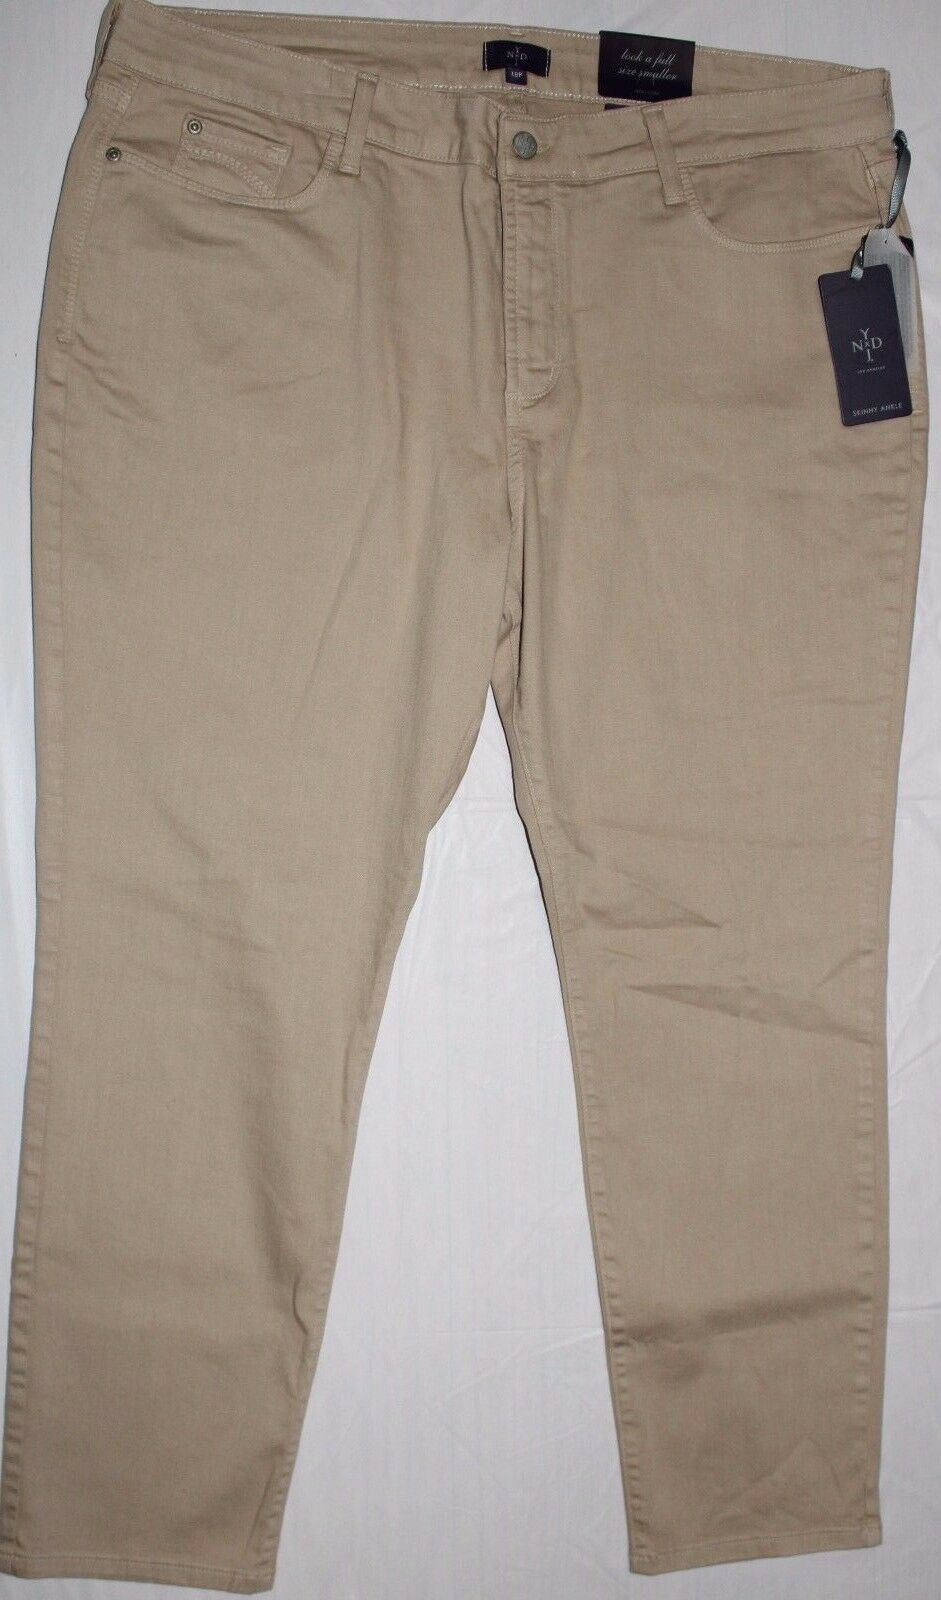 NYDJ NOT YOUR DAUGHTER'S JEANS ALMOND ANKLE PANTS SZ 18P